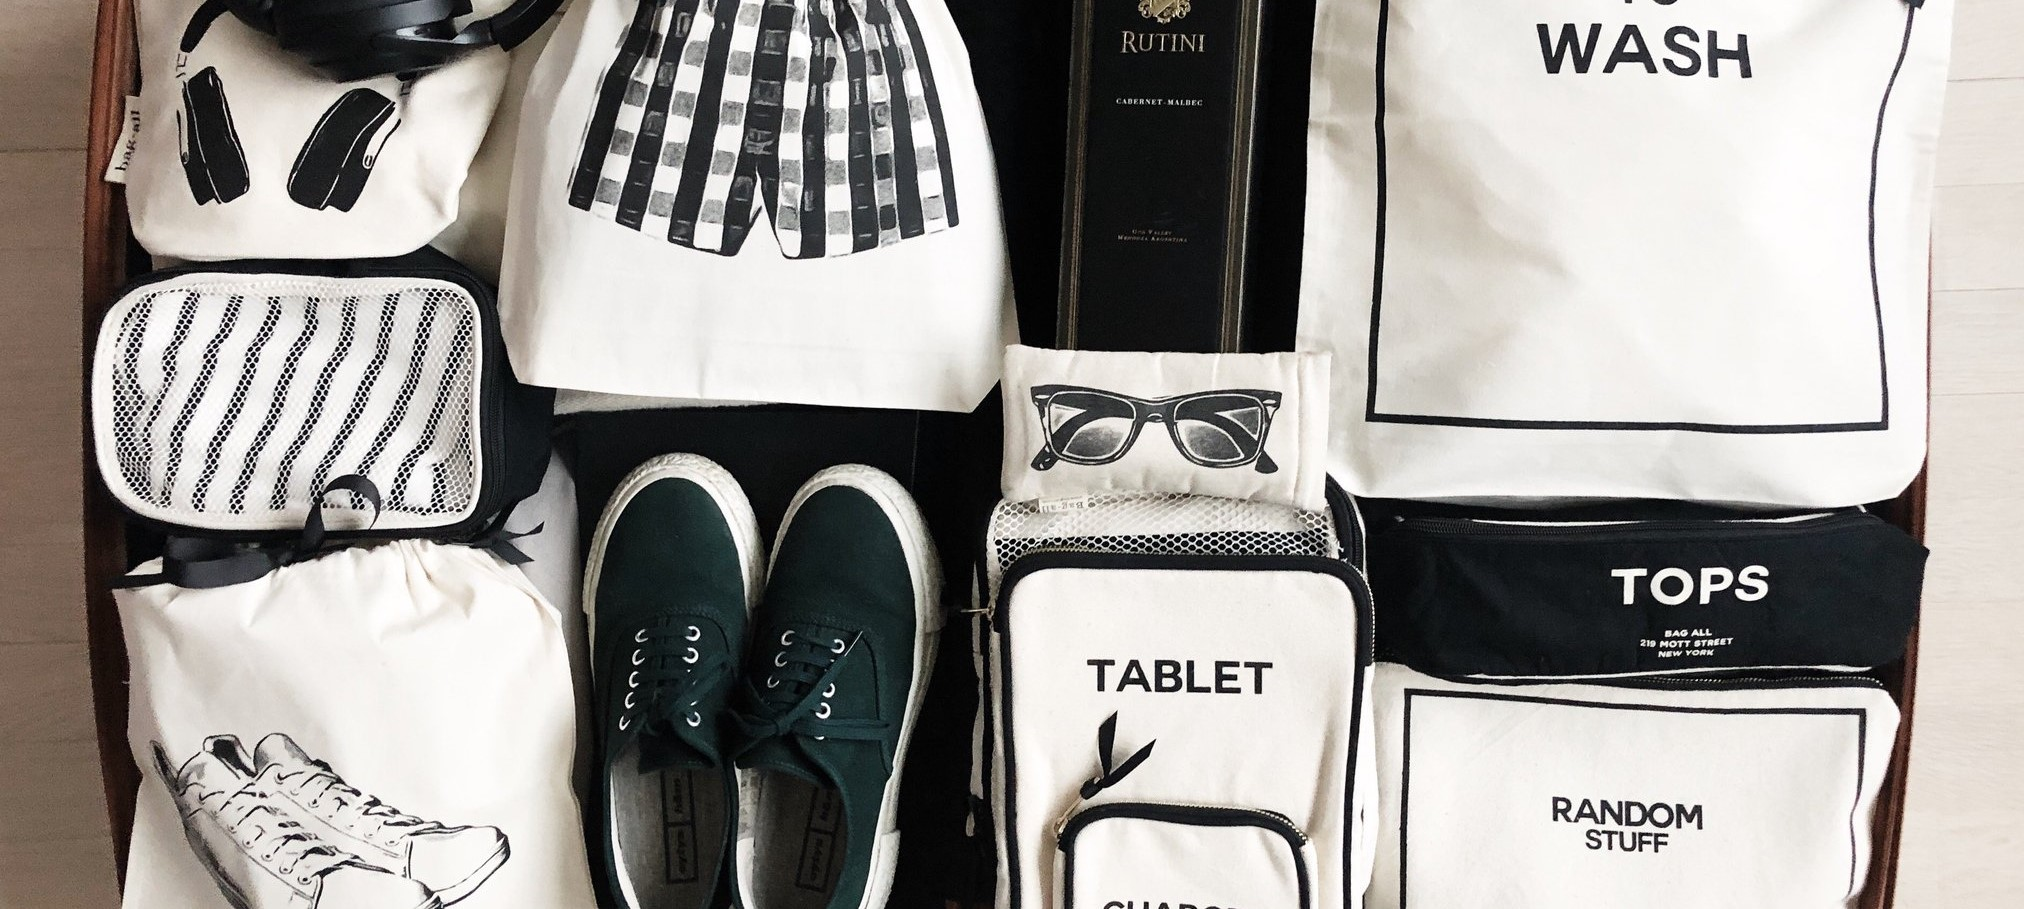 F_BLACKHEADPHONECASE_PACKINGCUBE_WHITEFLATSNEAKERS_BOXERBAG_HISSUNGLASSES_TABLETCASE_PACKINGCUBE_RANDOMSTUFFCASESMALL_MOODBAG-ALL_1_2_2048x-22ZRbYHO6iSvKv